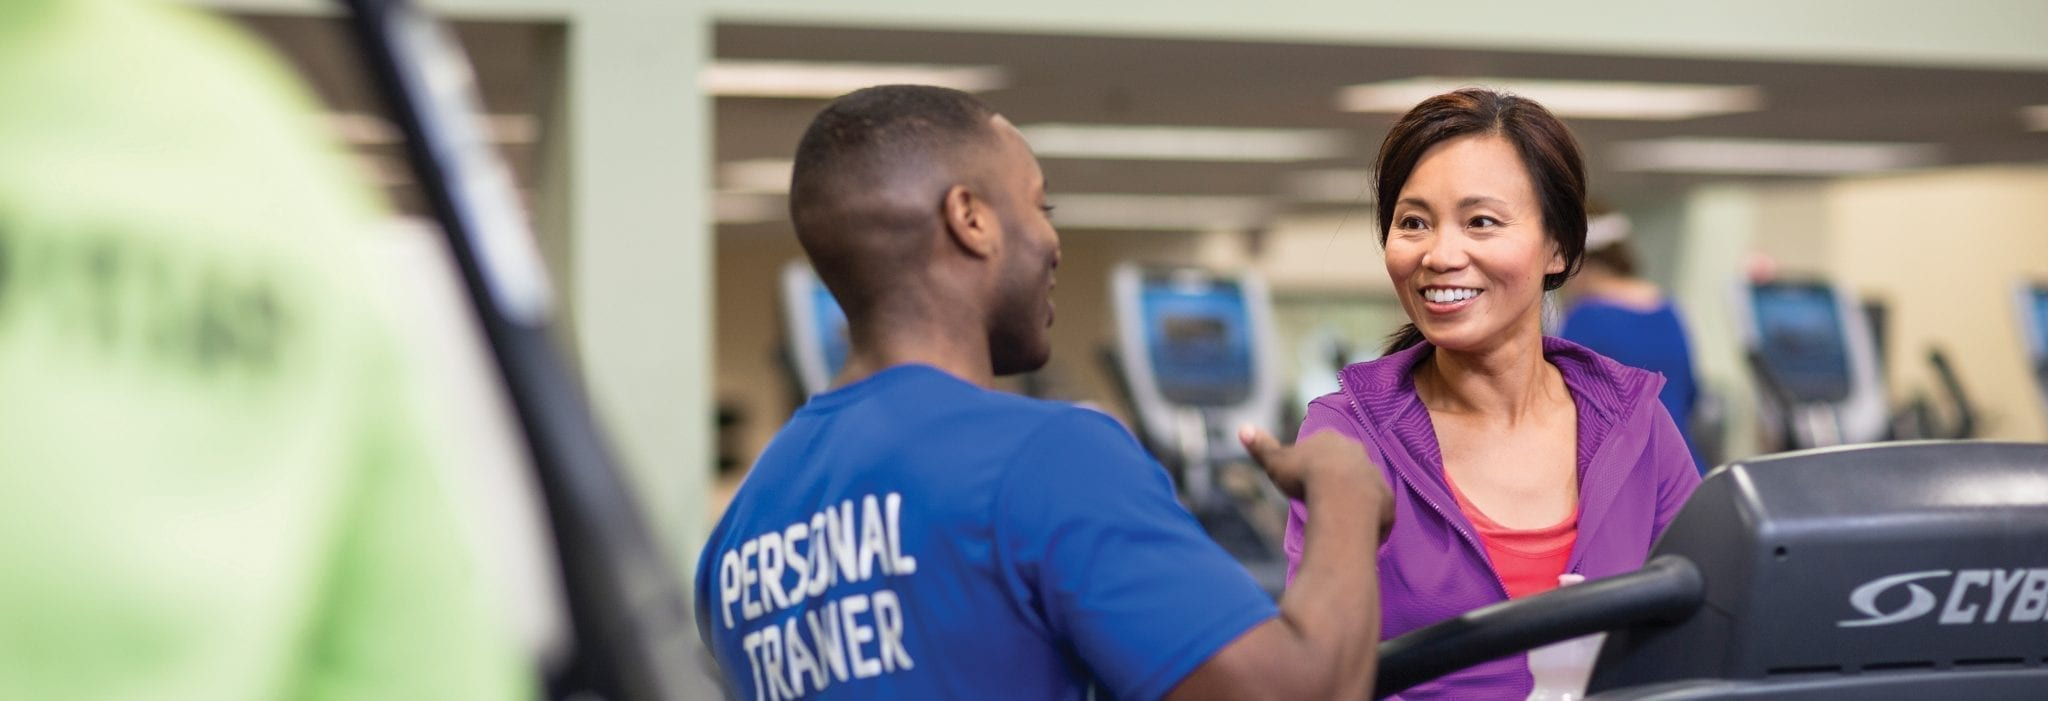 personal trainer working with lady on treadmill